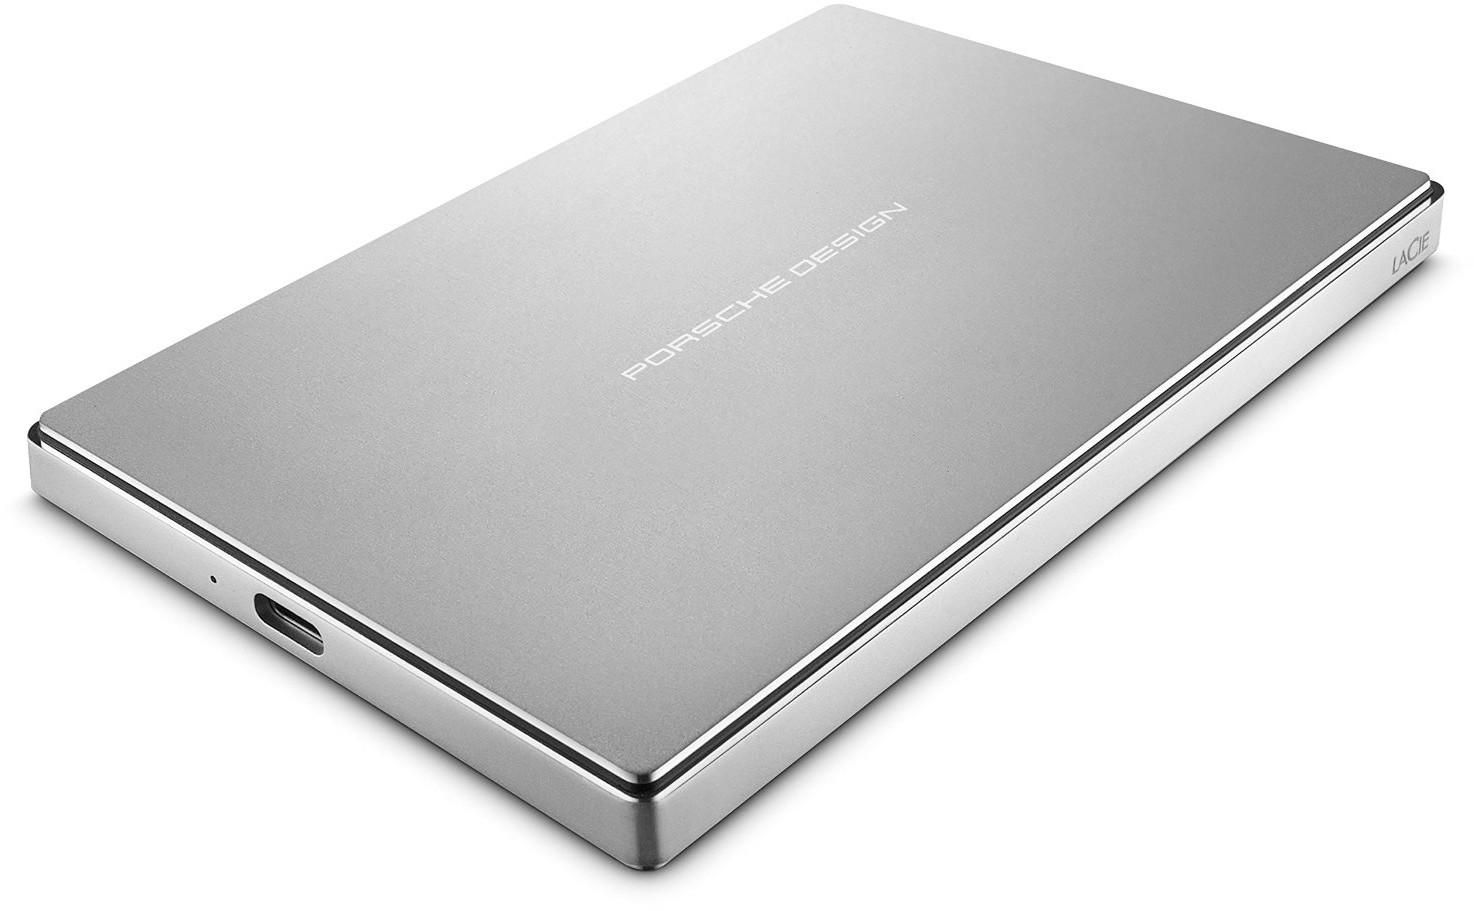 Phones moreover Video Service Discovery Made Easy Spring Cloud Config also Thunderbolt3 together with Showthread additionally How To Transform Your Laptop Into A Gaming Powerhouse With An External Graphics Card. on desktop external ports